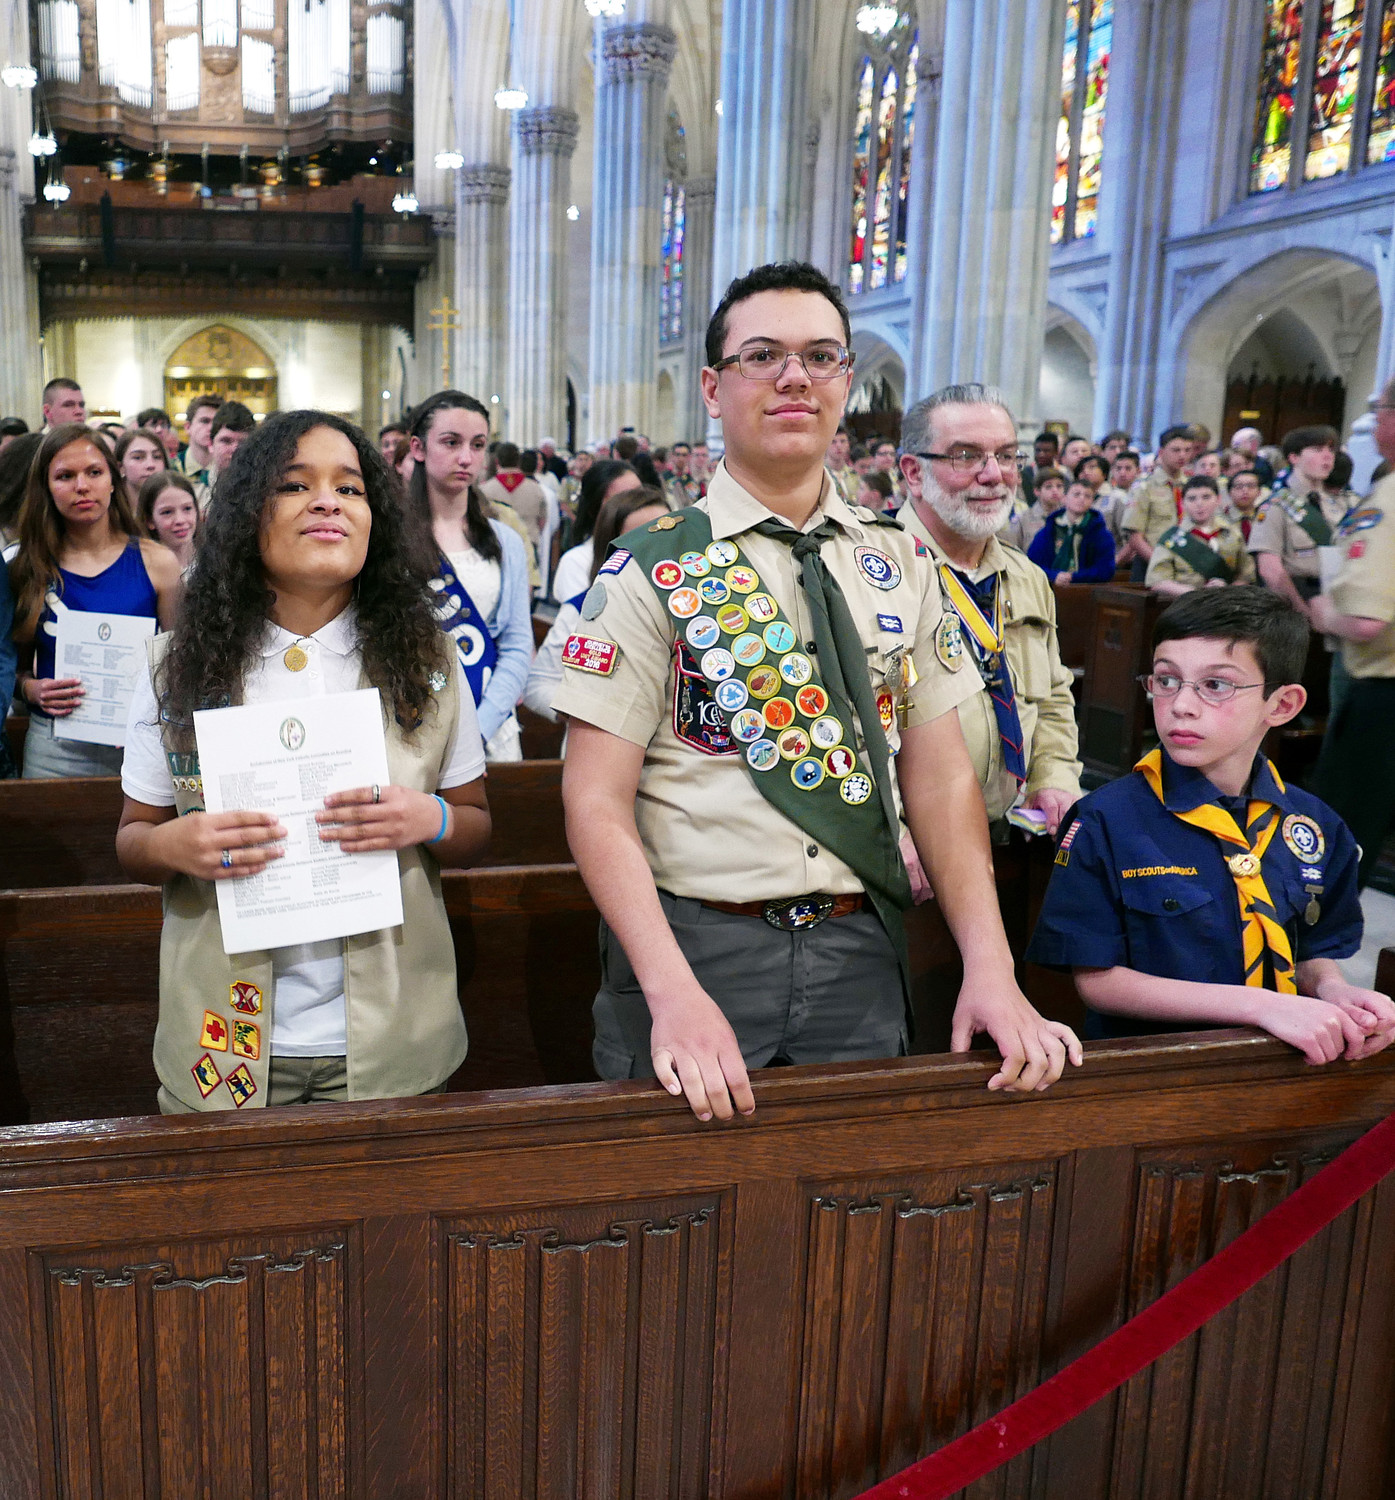 Scouts fill the pews of St. Patrick's Cathedral for the archdiocesan Emblem Sunday Scouting Mass celebrated by Cardinal Dolan April 22. Honors were given to 158 scouts at the afternoon liturgy, which was attended by 900 people.